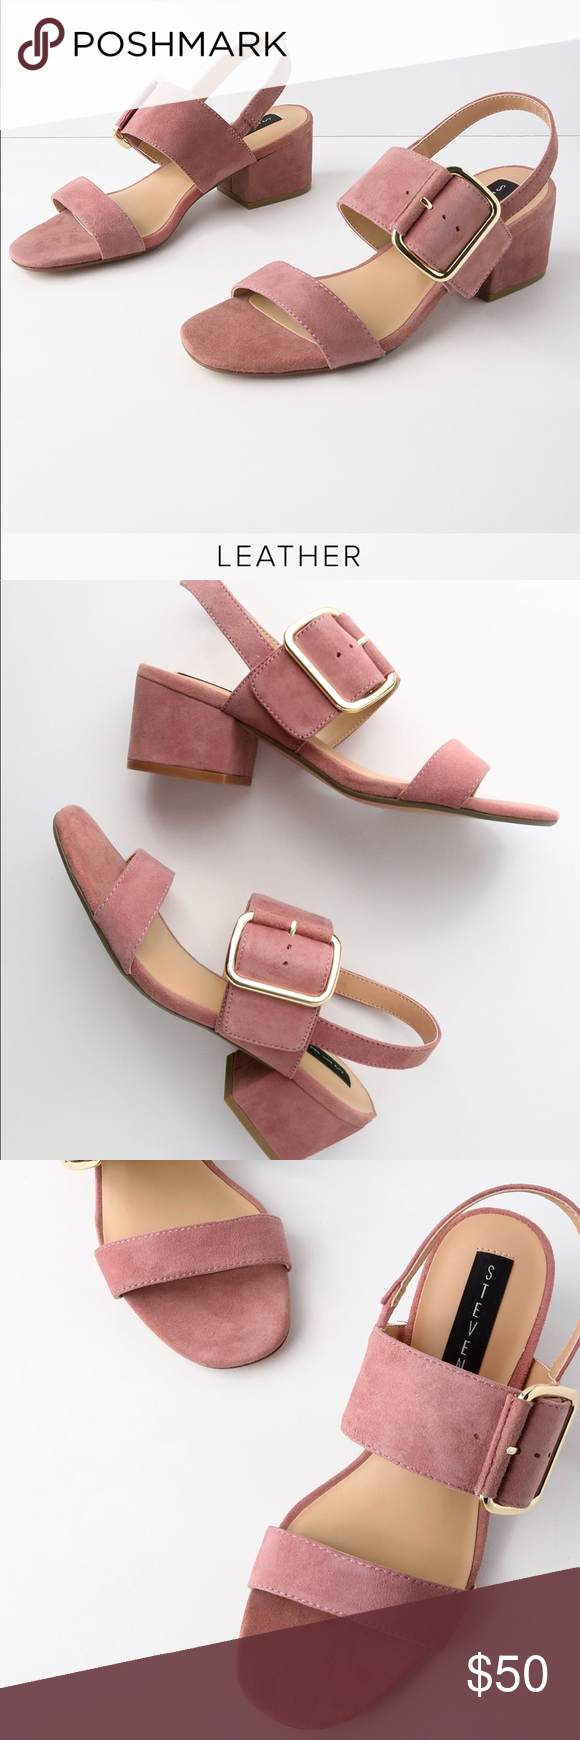 cb696555dcb Steven by Steve Madden Rose Suede Leather Heels You bet we are fond of the  Steven by Steve Madden Rose Suede Leather High Heel Sandals!